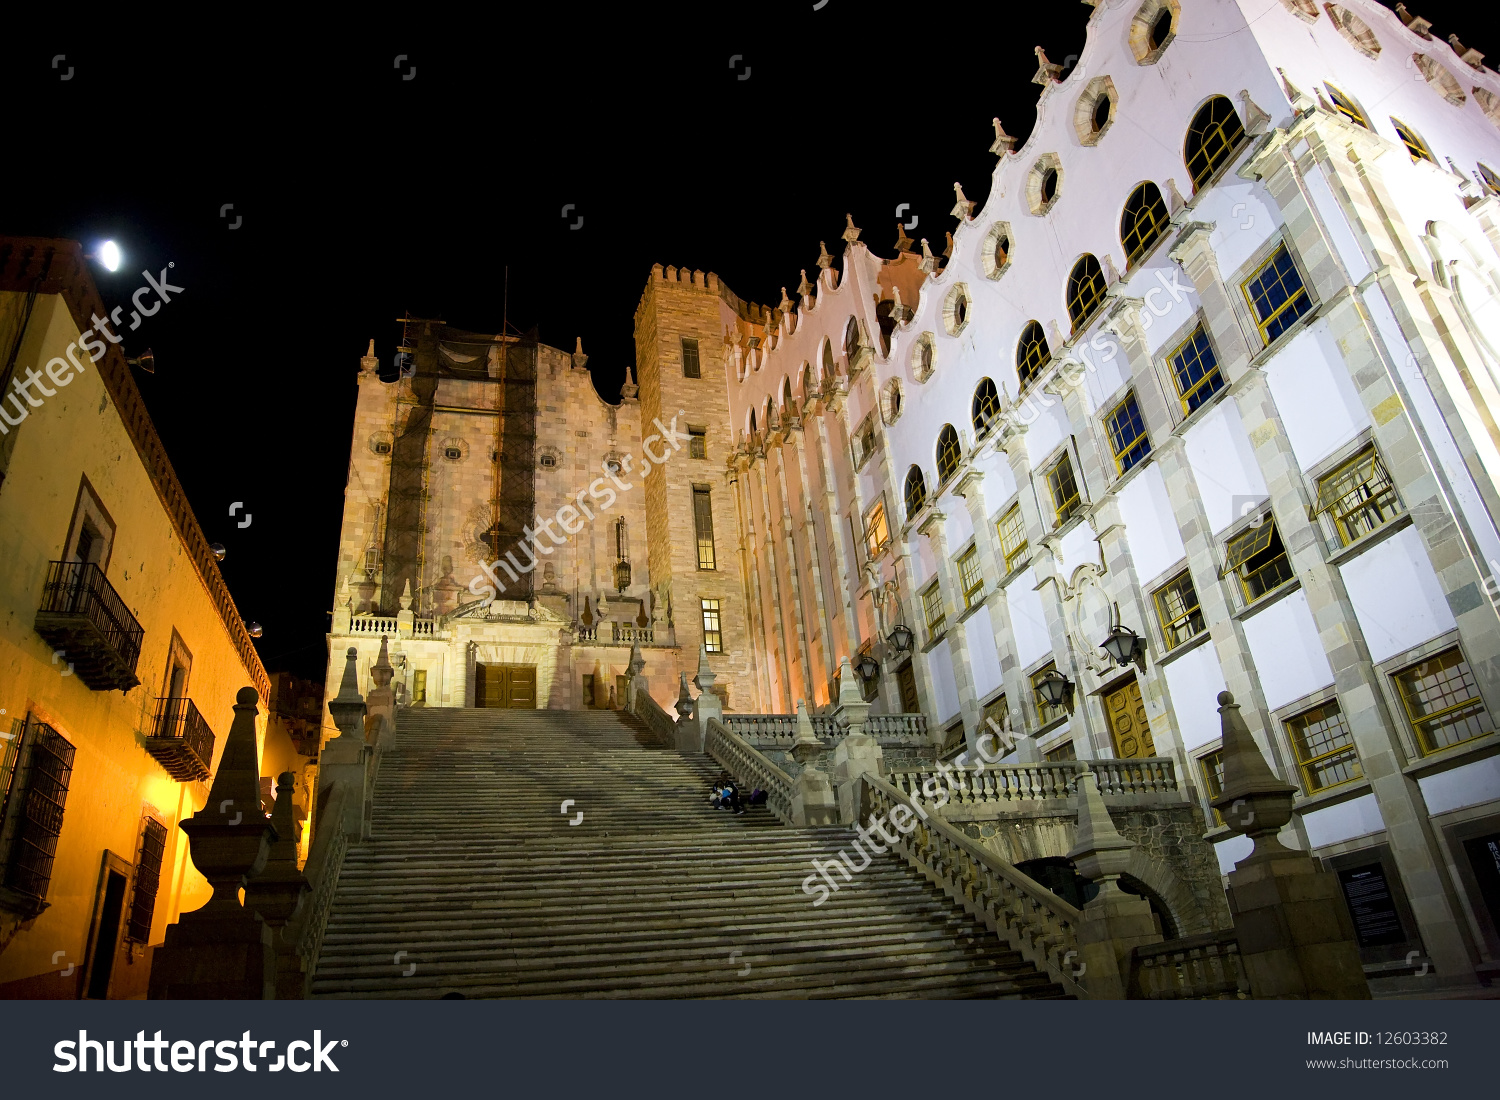 University Of Guanajuato, Mexico, Steps With Students At Night.